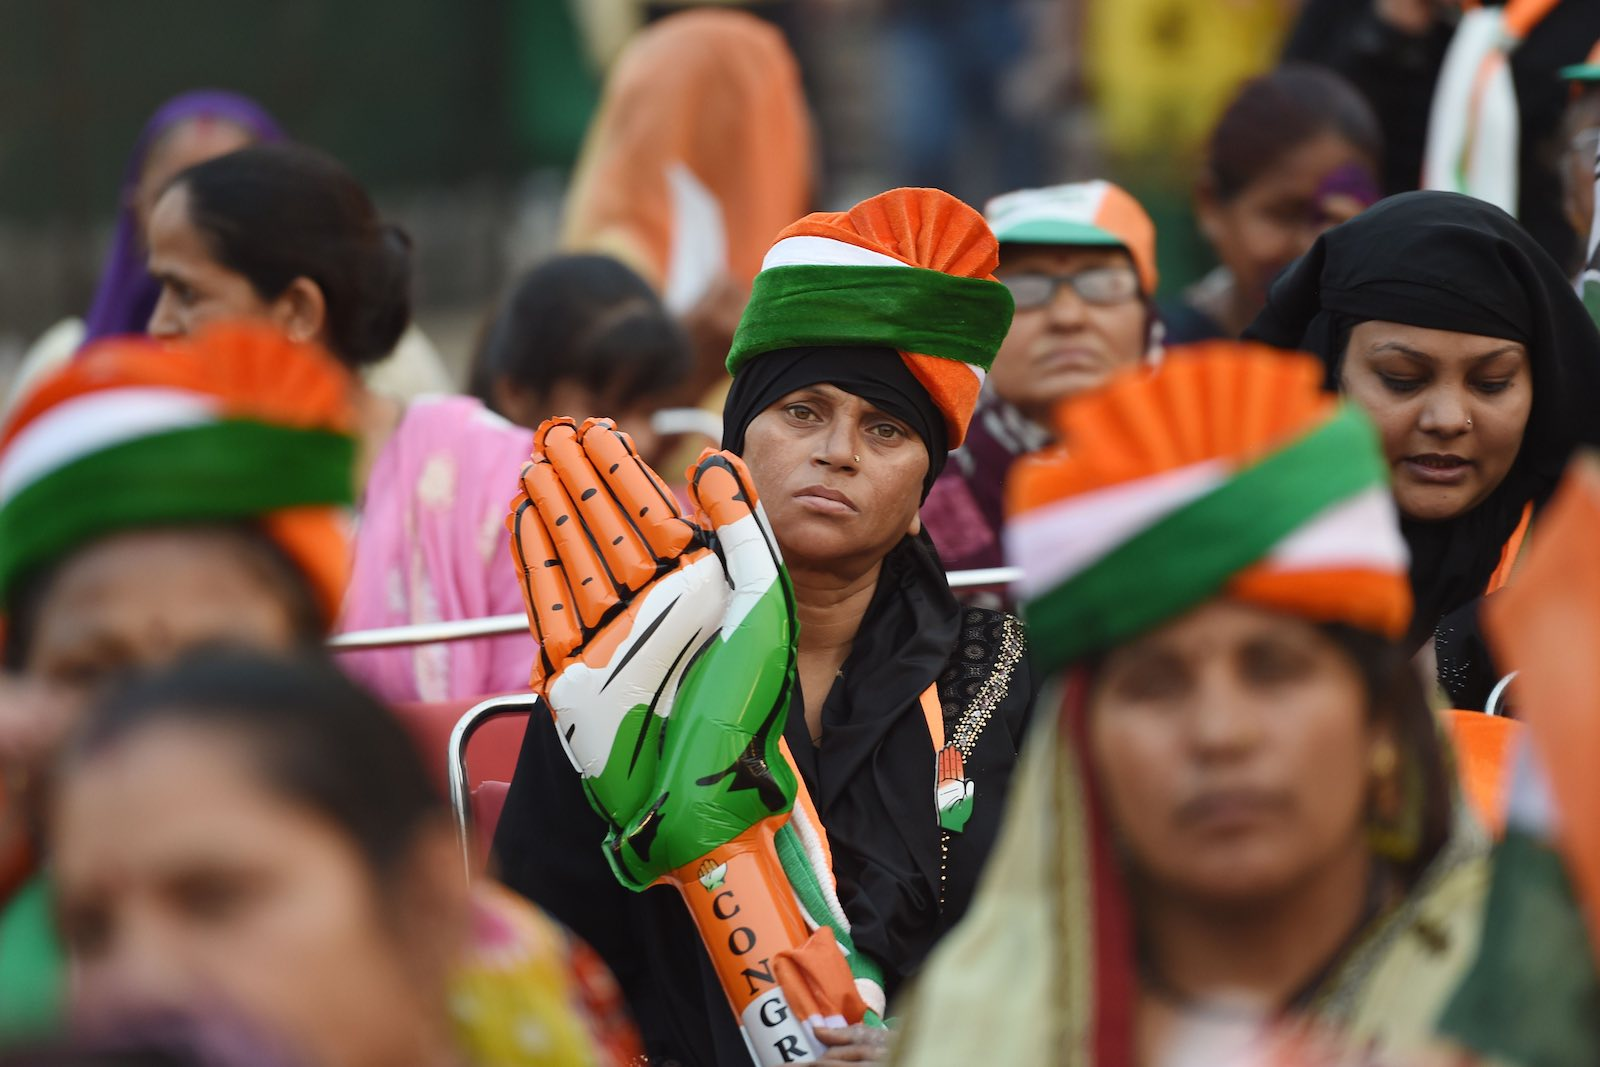 Congress, once the party of power in India, has suffered unprecedented consecutive defeats (Photo: Money Sharma via Getty)